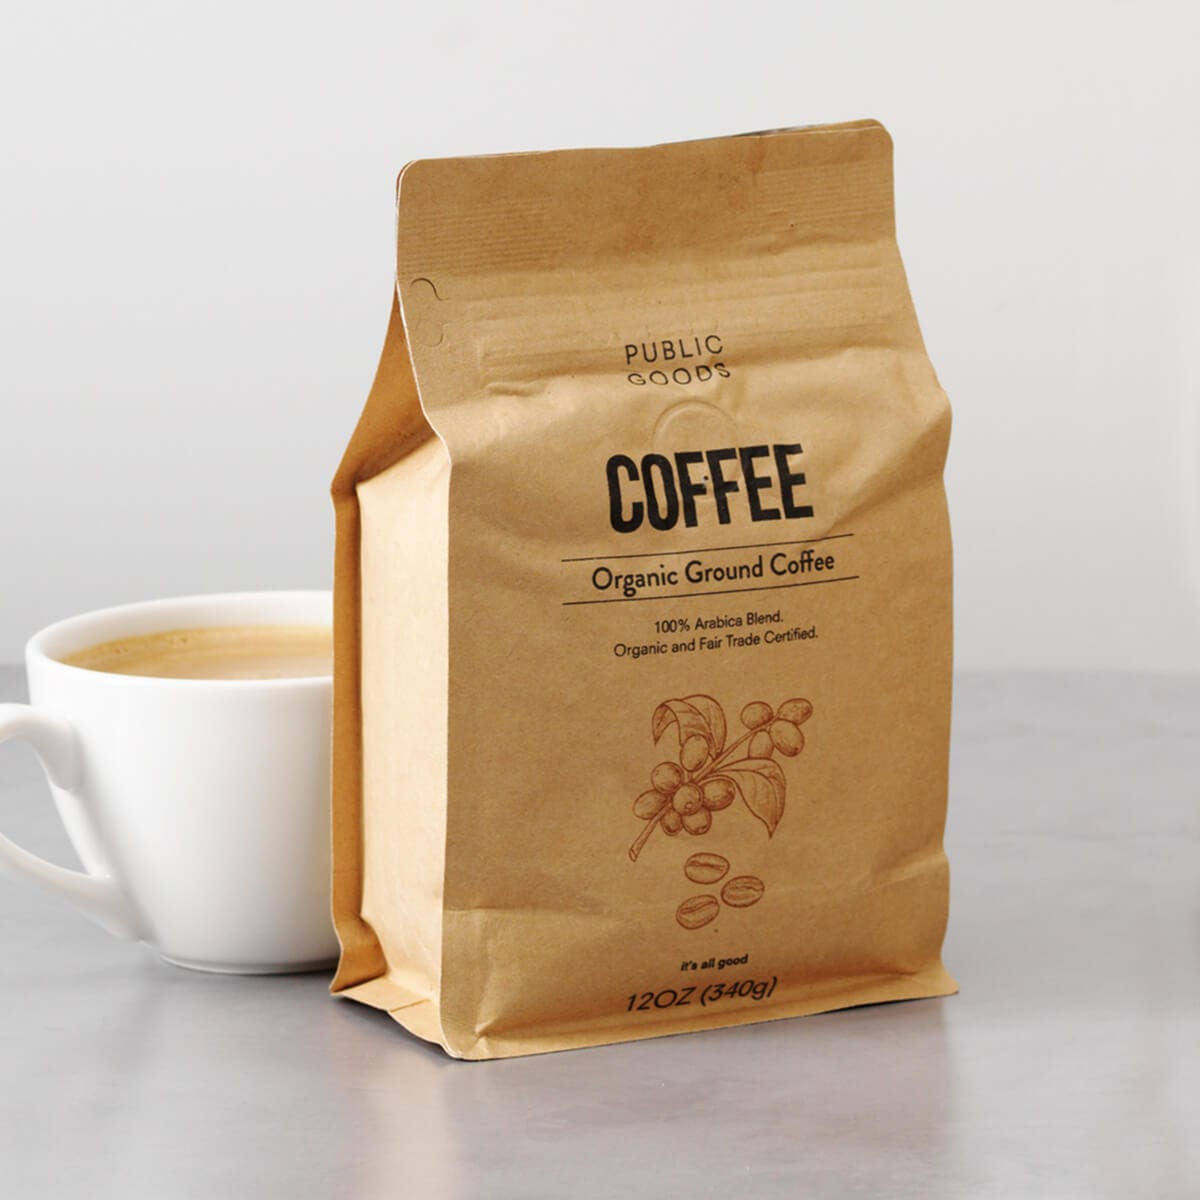 packaged organic ground coffee, cup of coffee